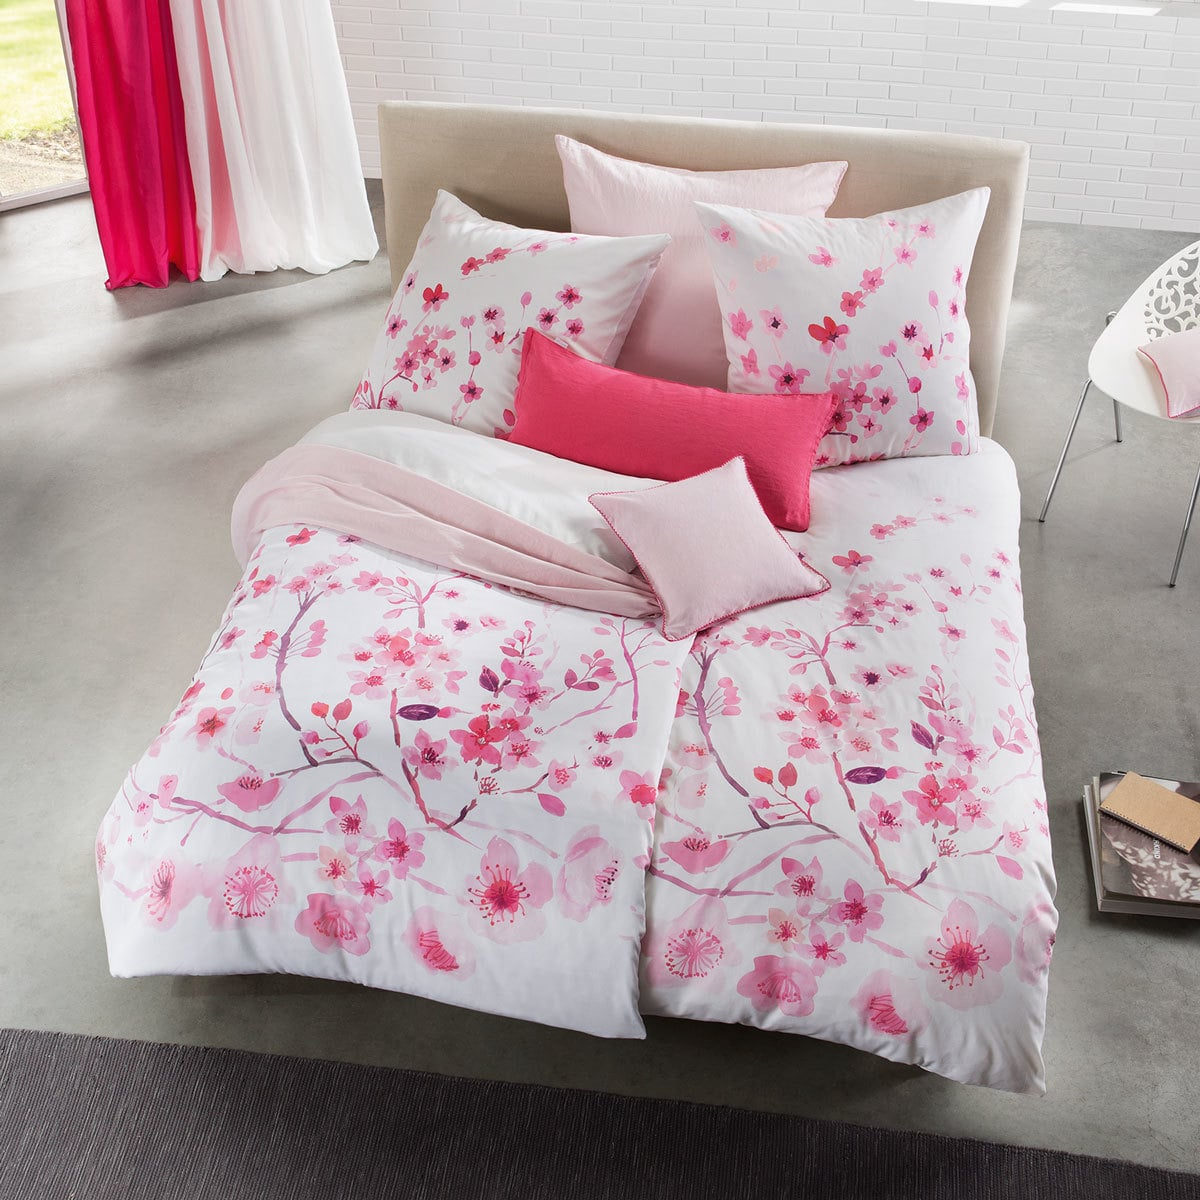 Fleuresse Mako-Satin Bettwäsche Bed Art S Fagernes